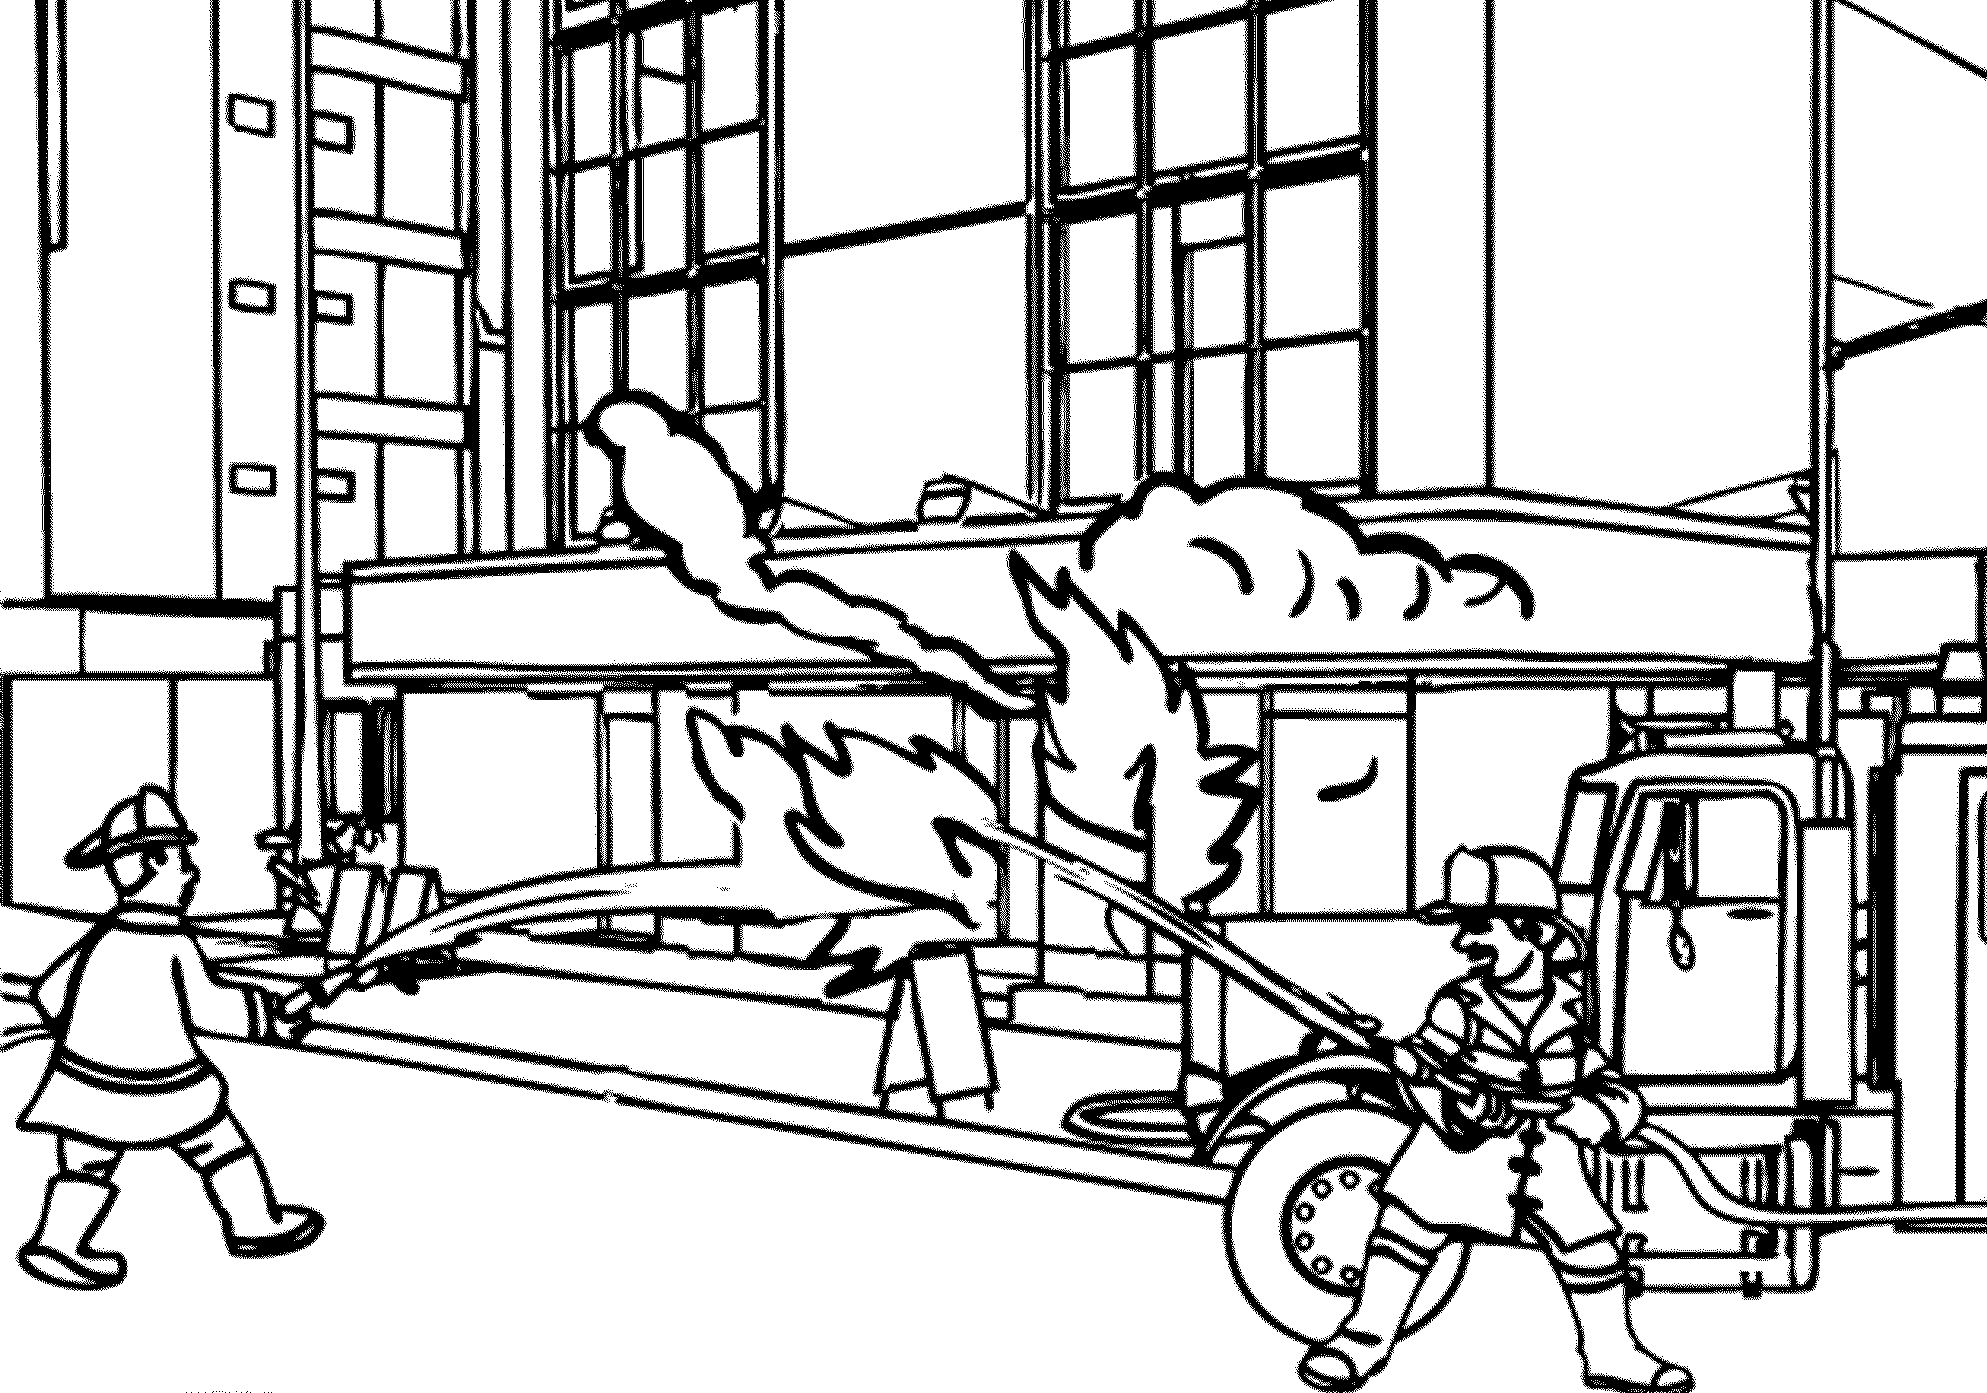 fire truck coloring book pages - photo#33